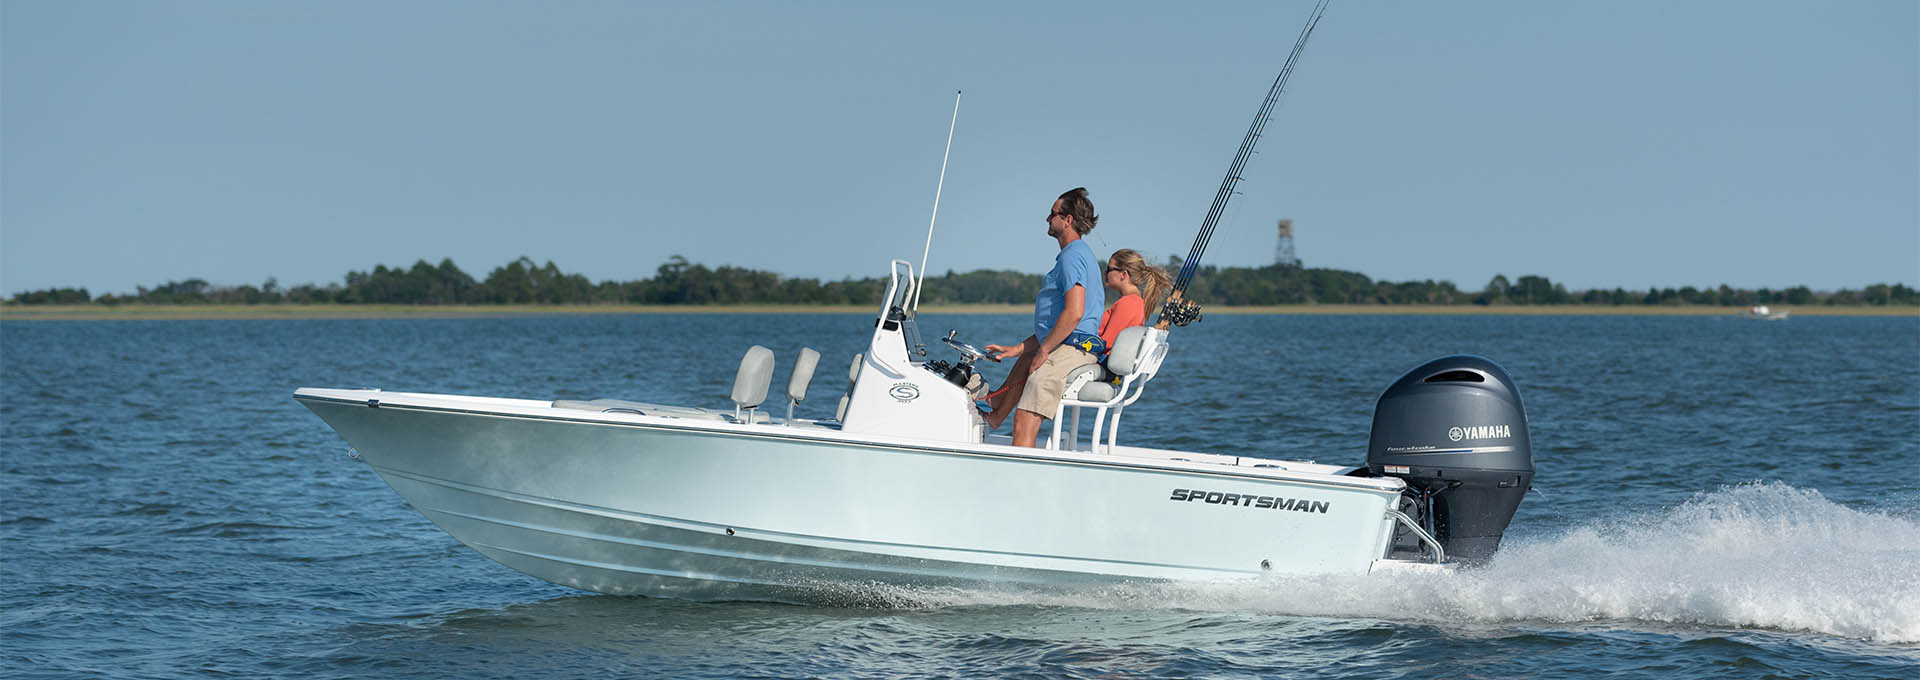 Slide show of images of the Masters 207 Bay Boat. This is image number 2.